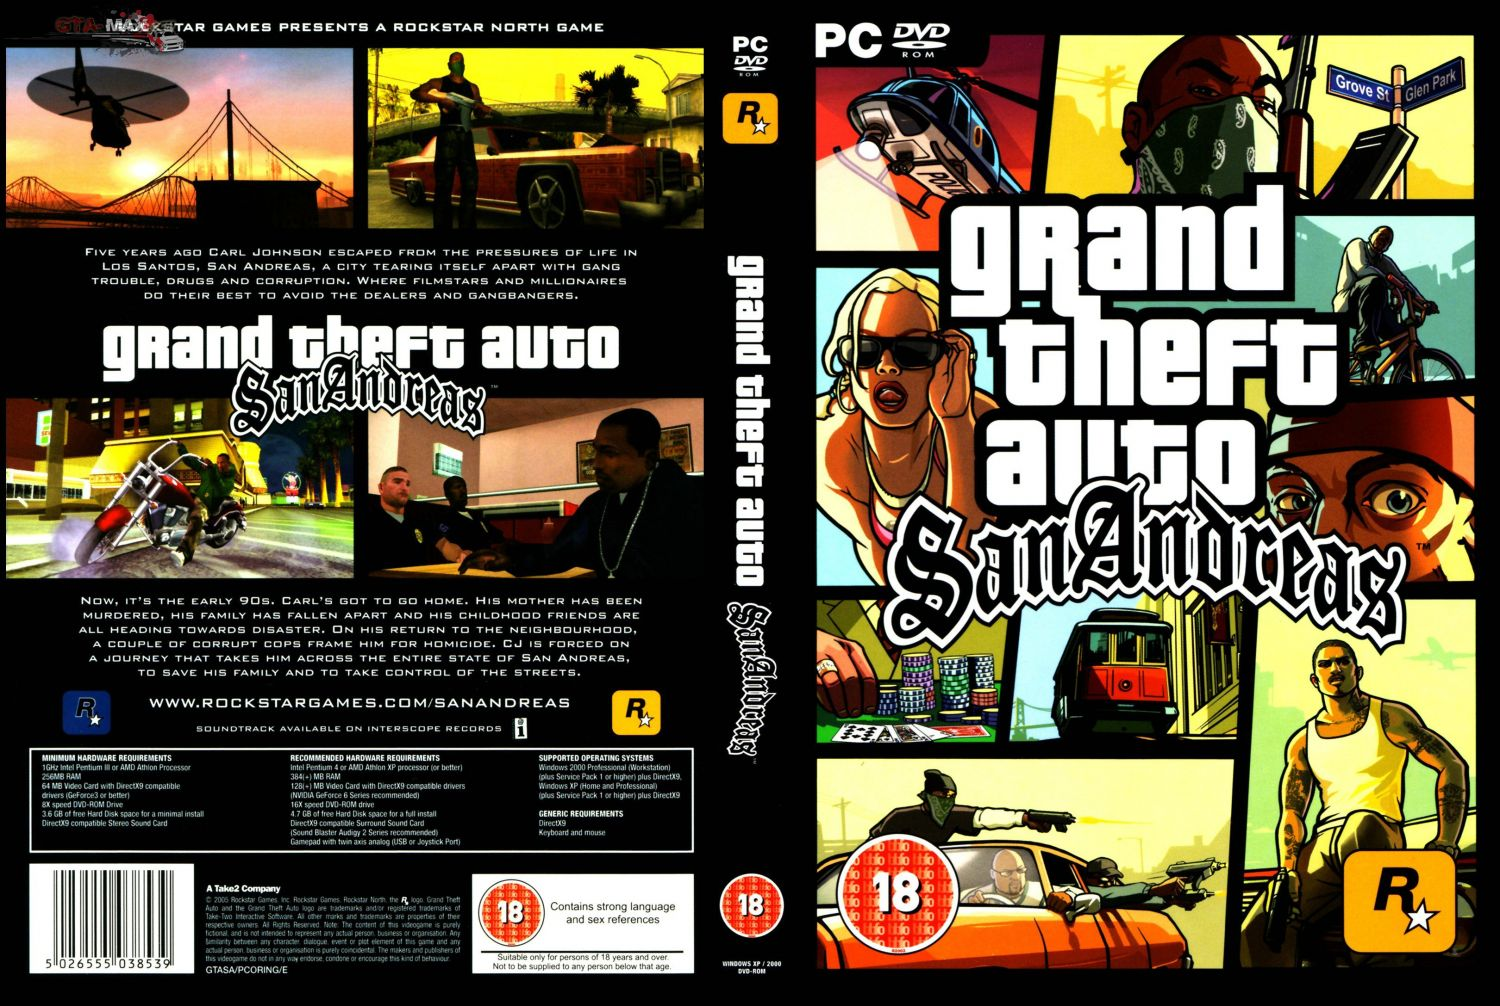 Скачать Grand Theft Auto San Andreas - Зомби Апокалипсис через торрент